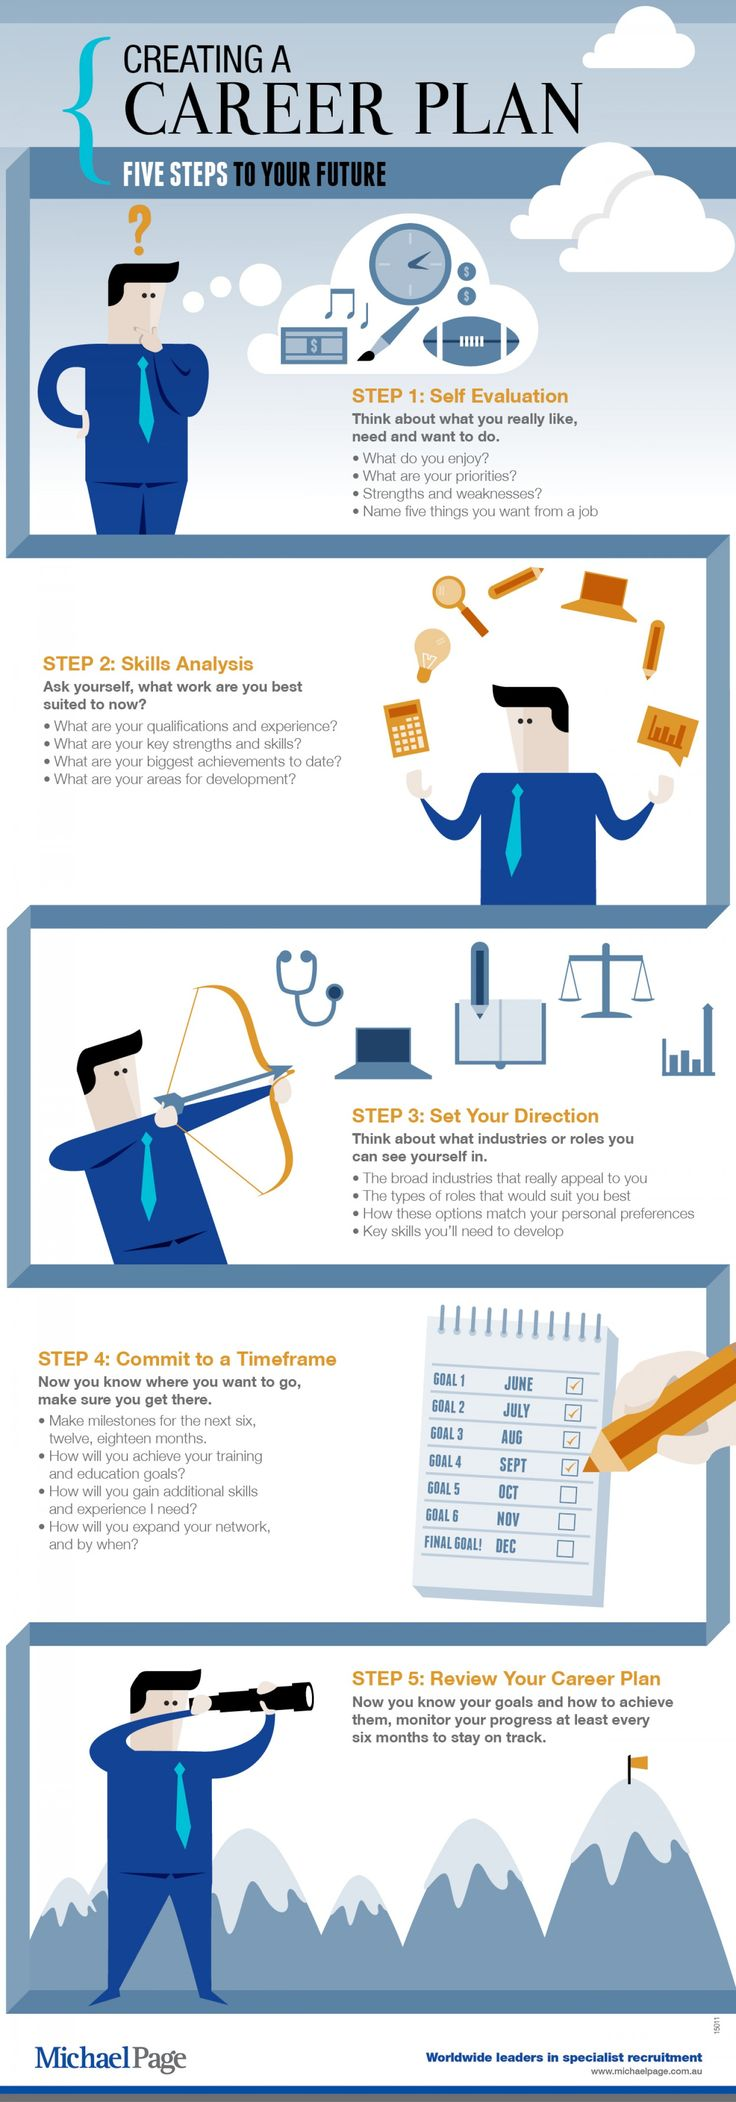 http://visual.ly/creating-career-plan-5-steps-your-future. Creating a career plan - Five steps to your future.